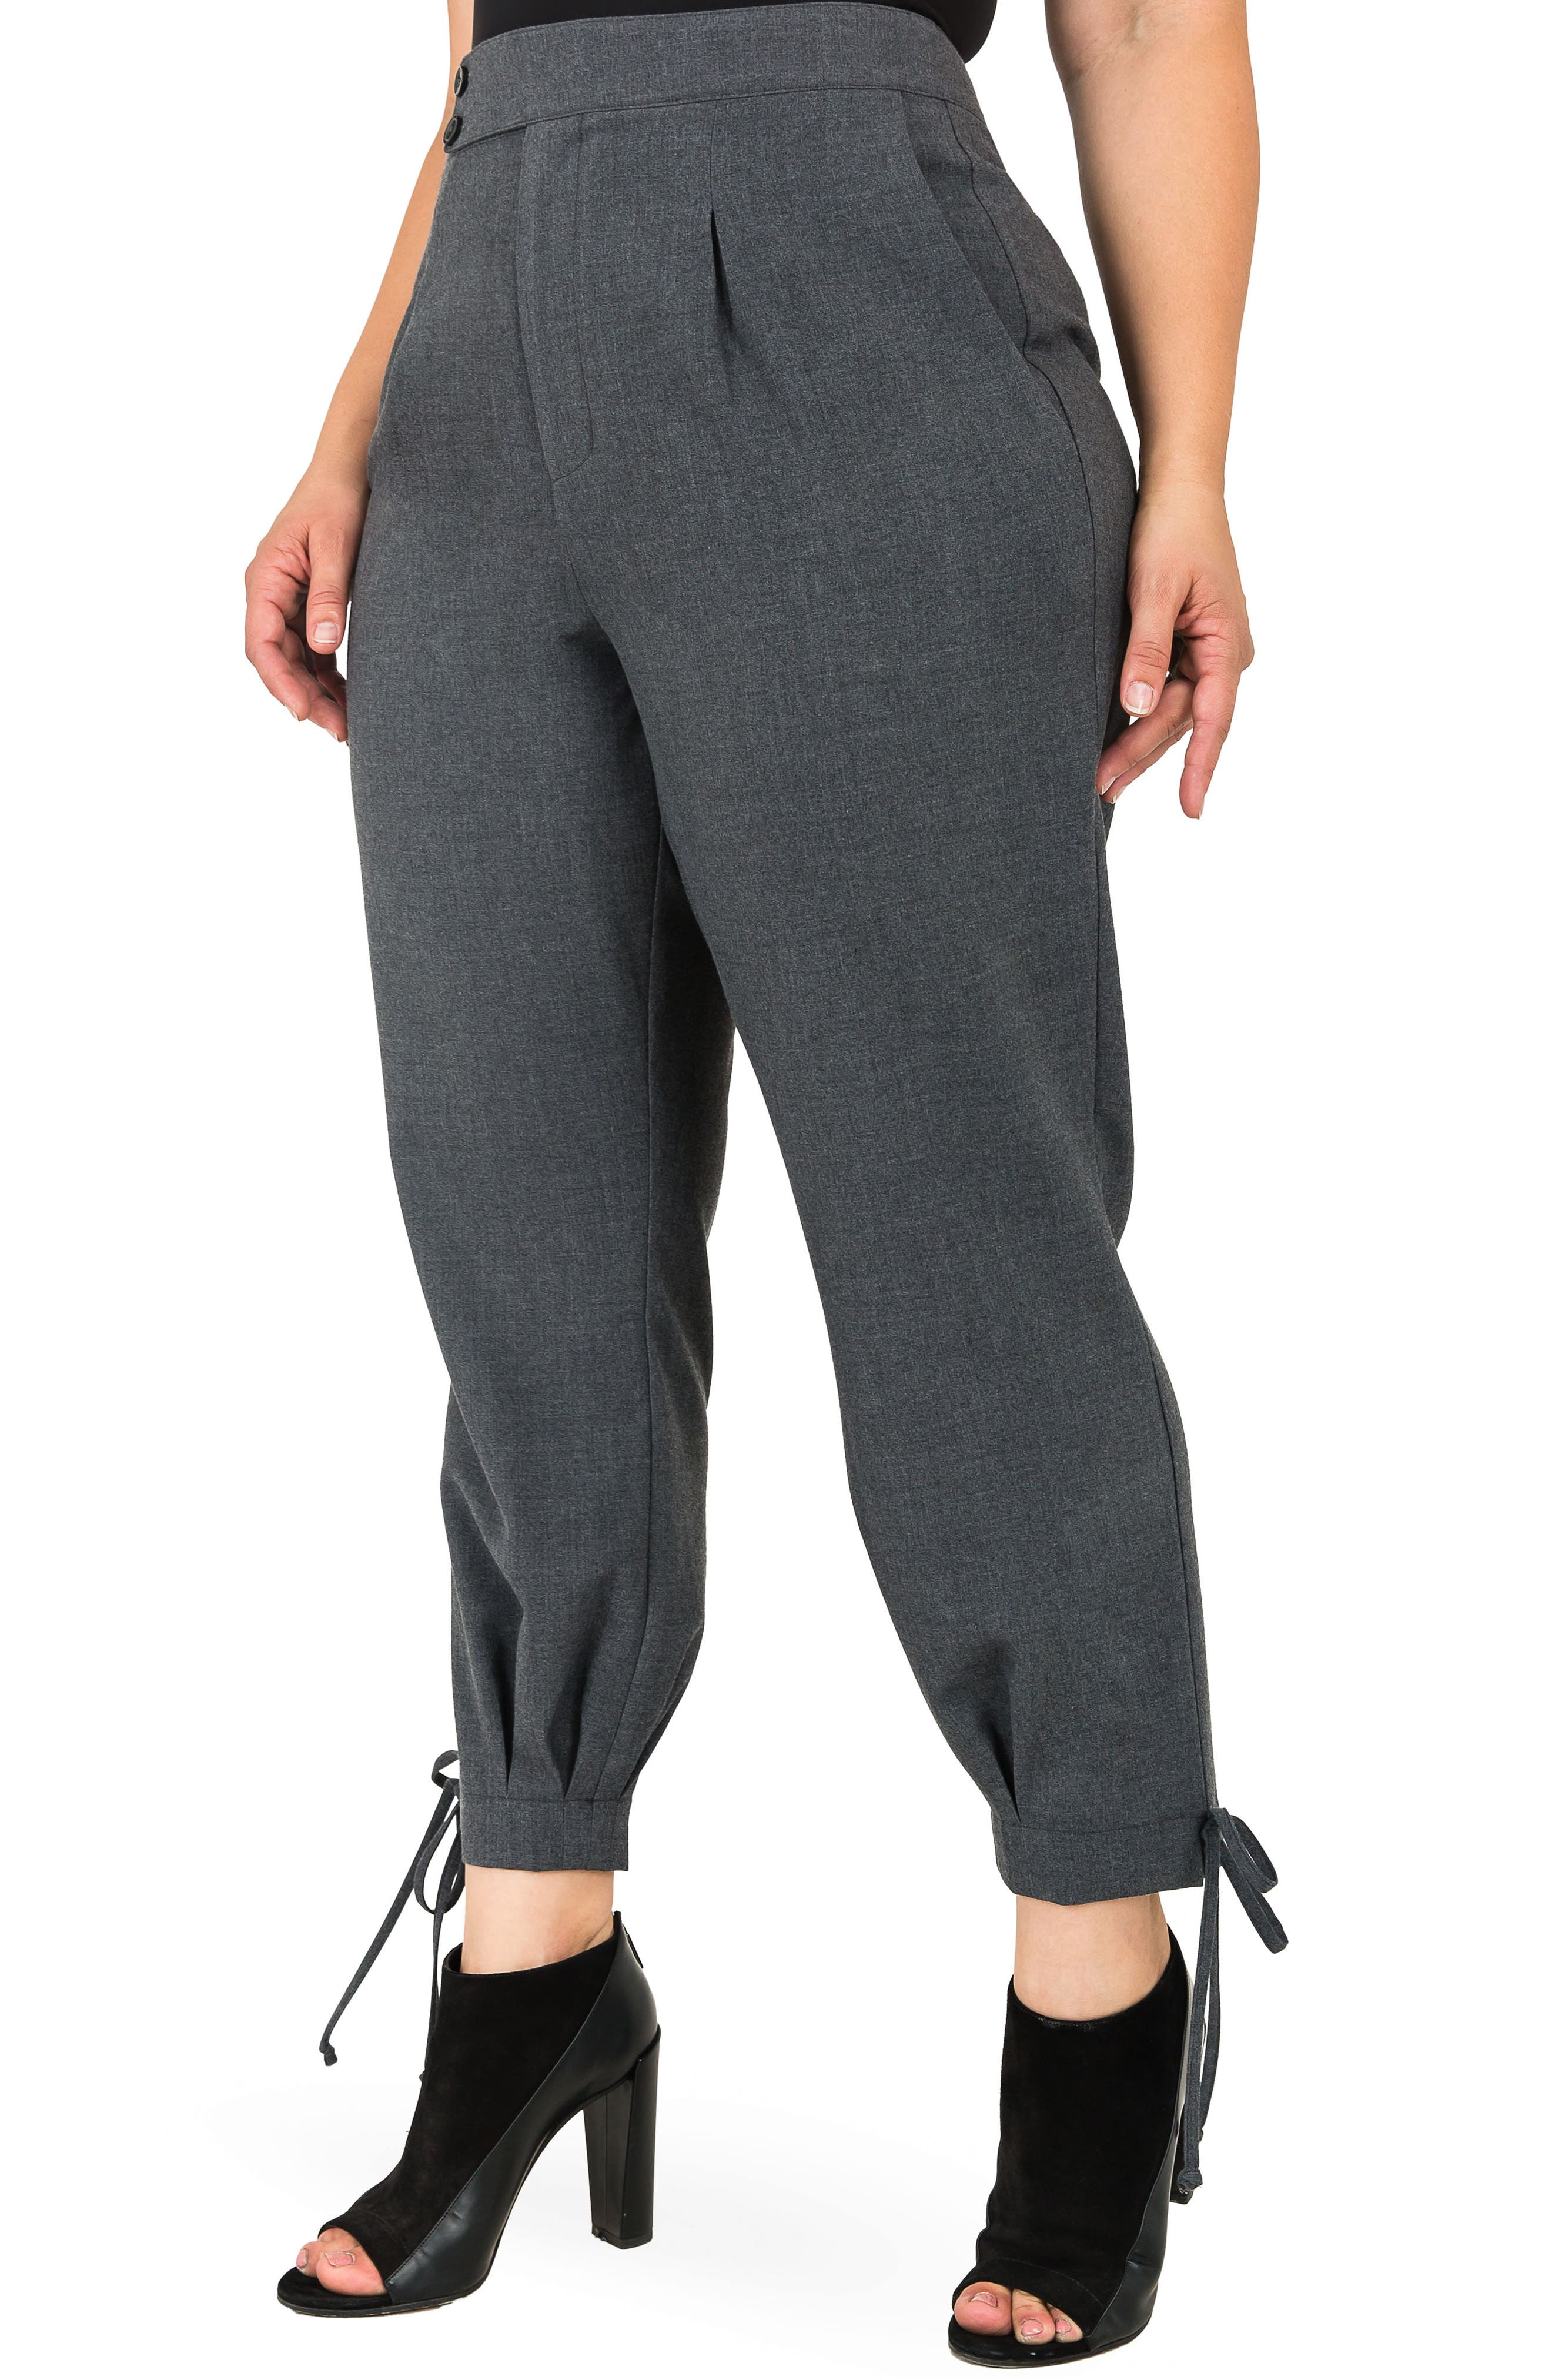 Robie Suiting Skinny Trousers,                             Alternate thumbnail 3, color,                             CHARCOAL